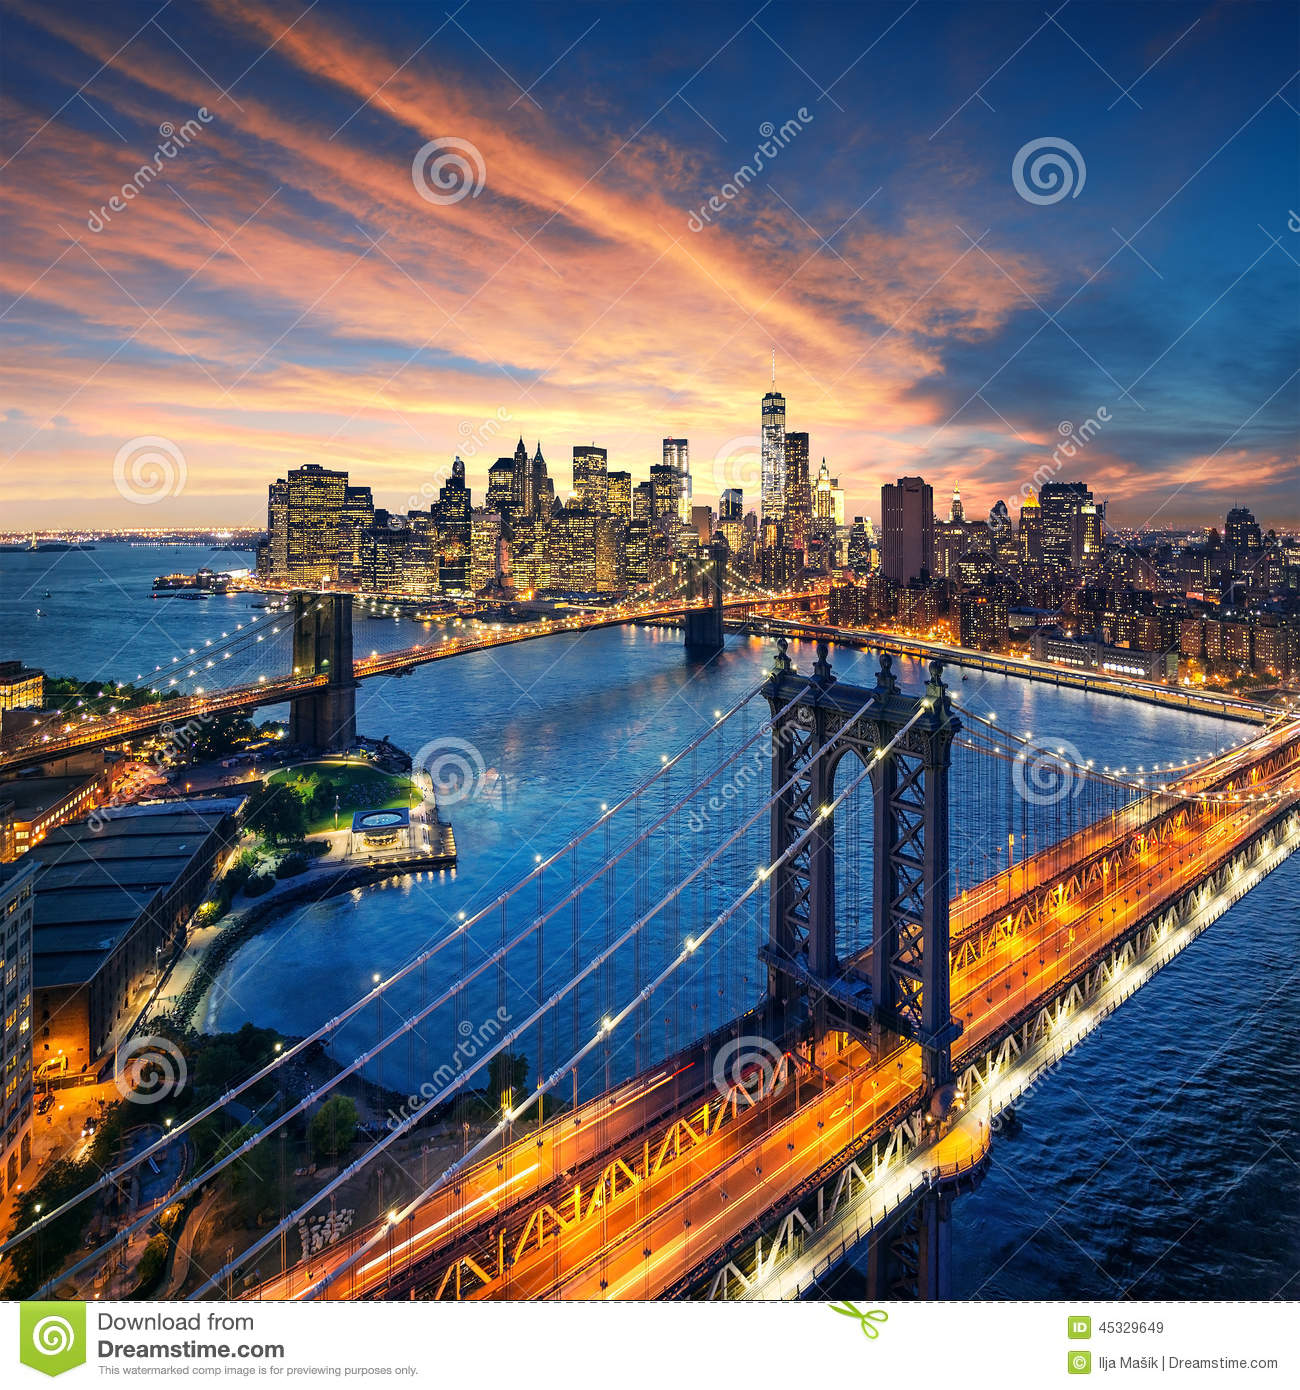 new helicopter prices with Stock Photo New York City Beautiful Sunset Over Manhattan Manhattan Brooklyn Bridge Image45329649 on 2005 Pilatus Pc1245 Sold together with Illustration Of Arrival And Departure Tags On White Background Vector 2362136 likewise Cutting Edge Gadgets From Ces 2016 in addition Stock Illustration A Letter H For Helicopter further Stock Illustration New York Skyline Cartoon Style Vector Illustration City Image44441920.